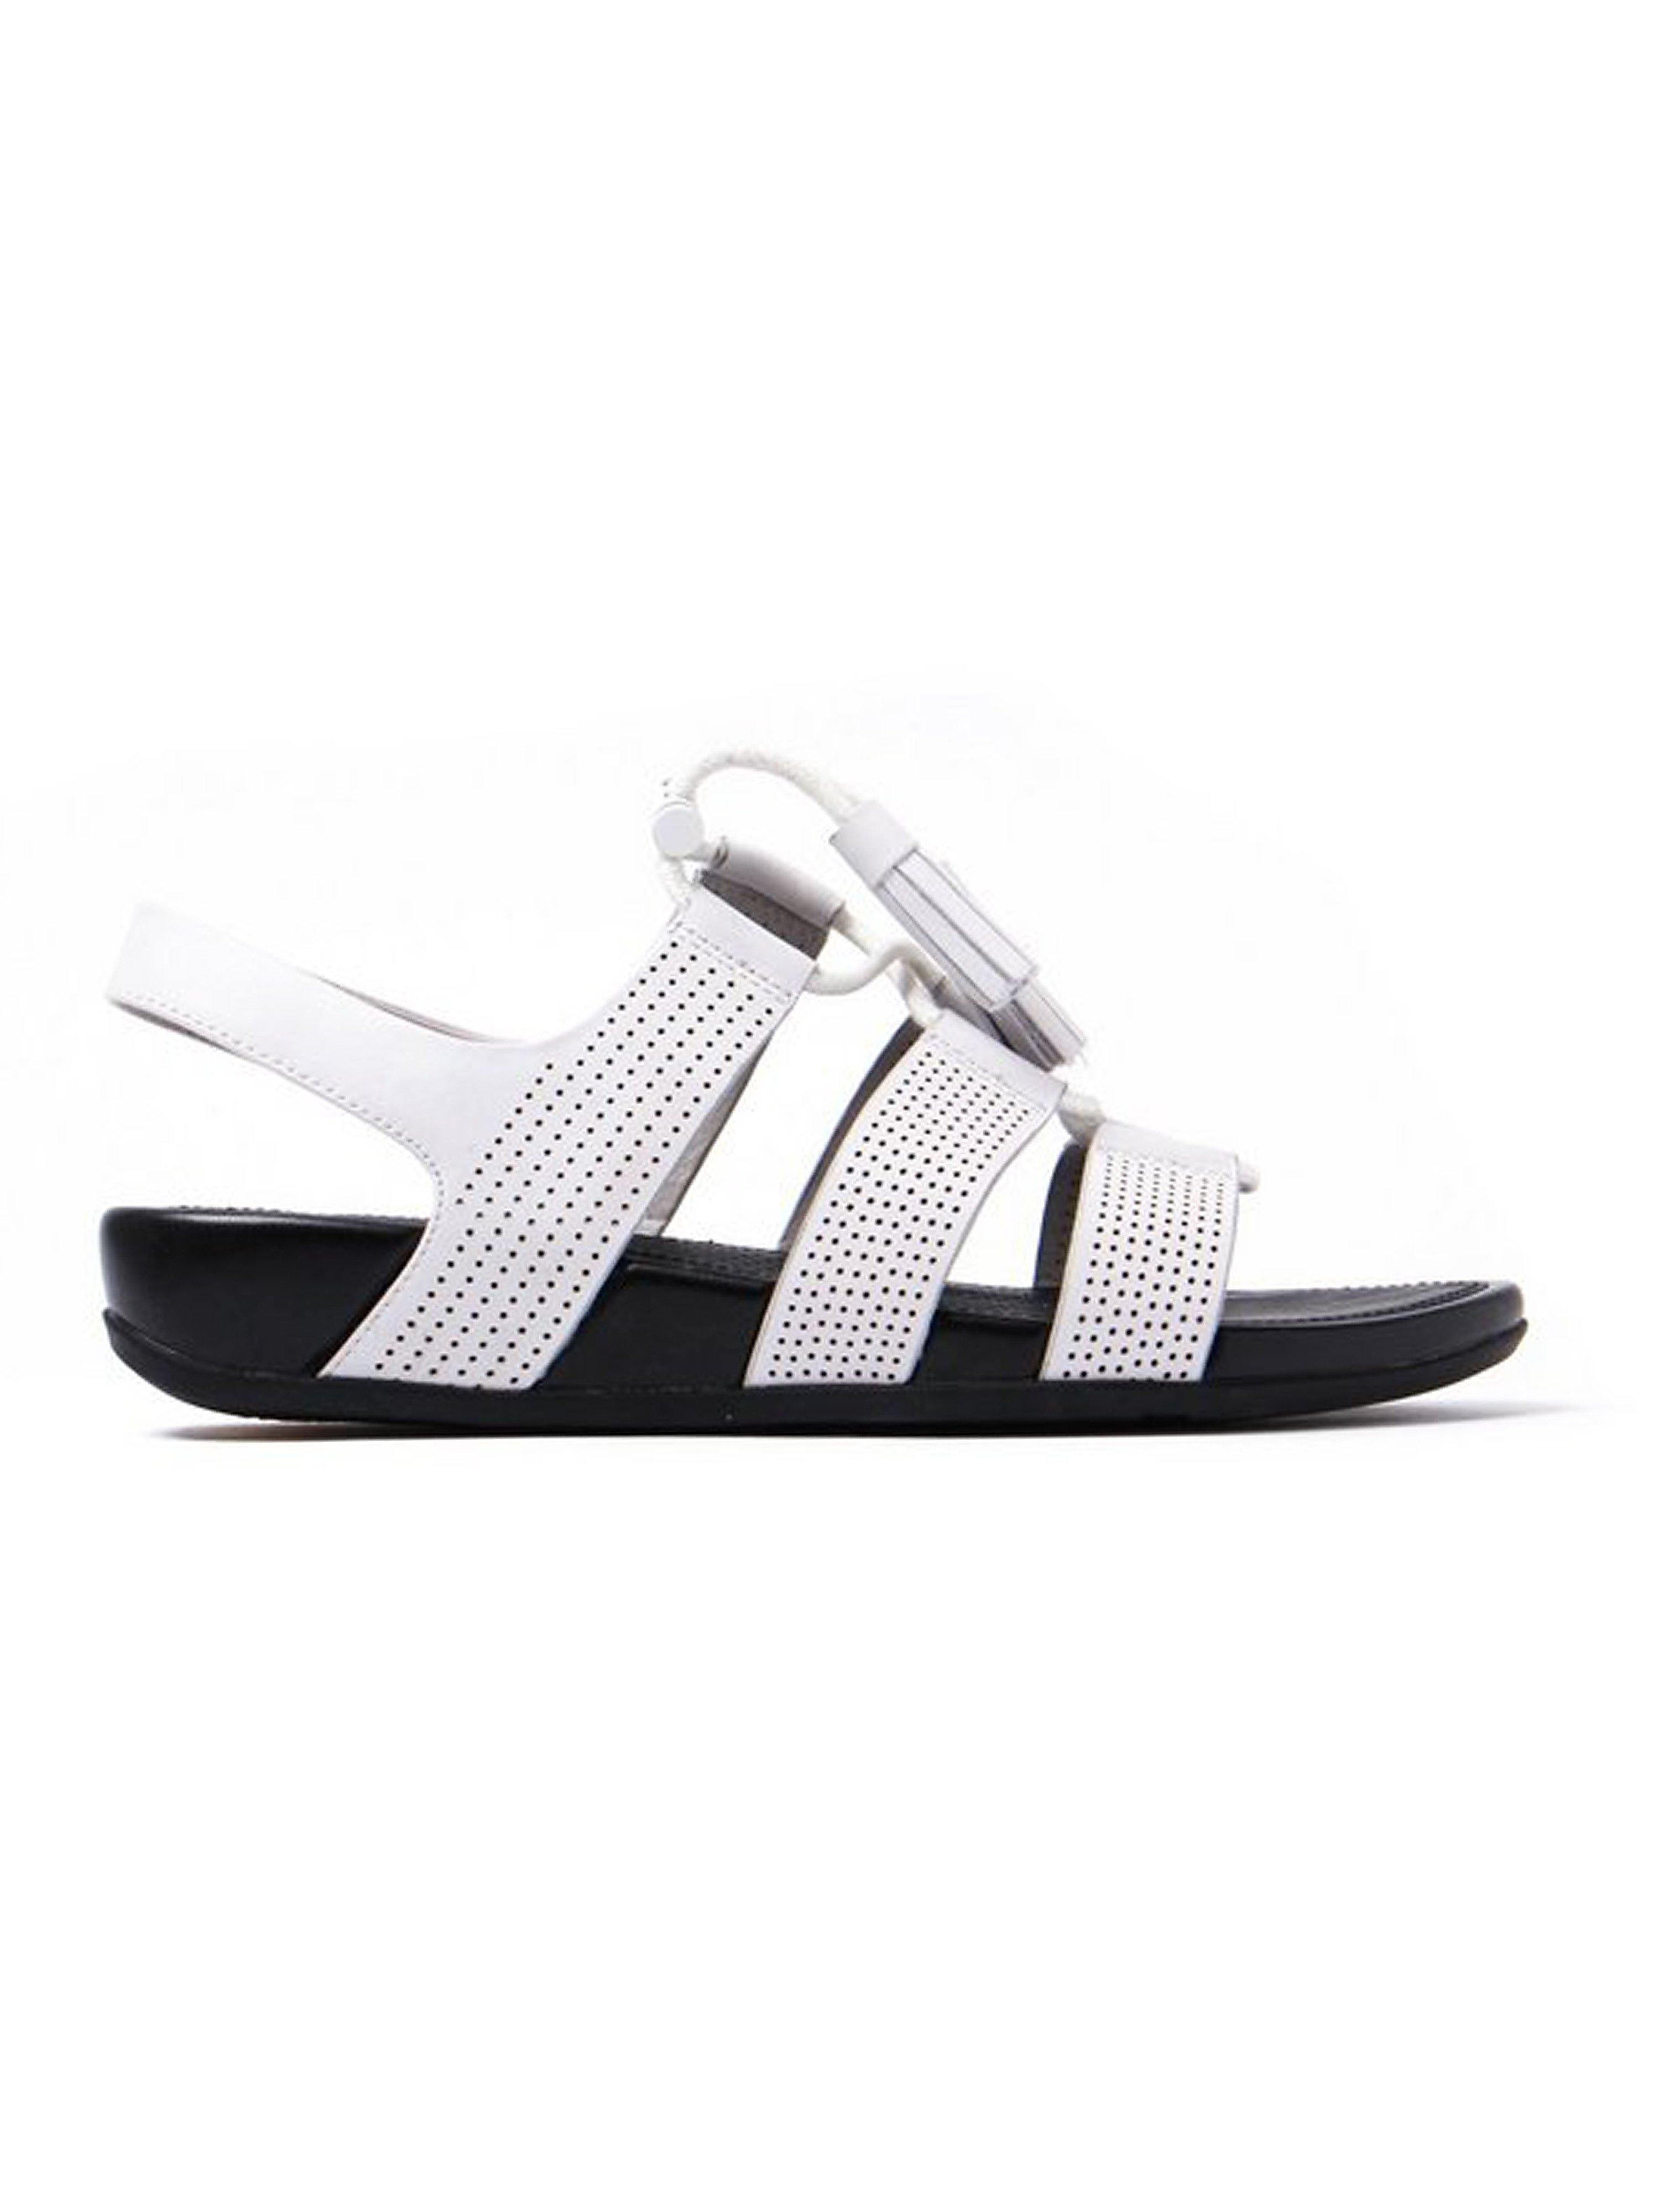 FitFlop Women's Gladdie Lace-Up Perforated Leather Sandals - White